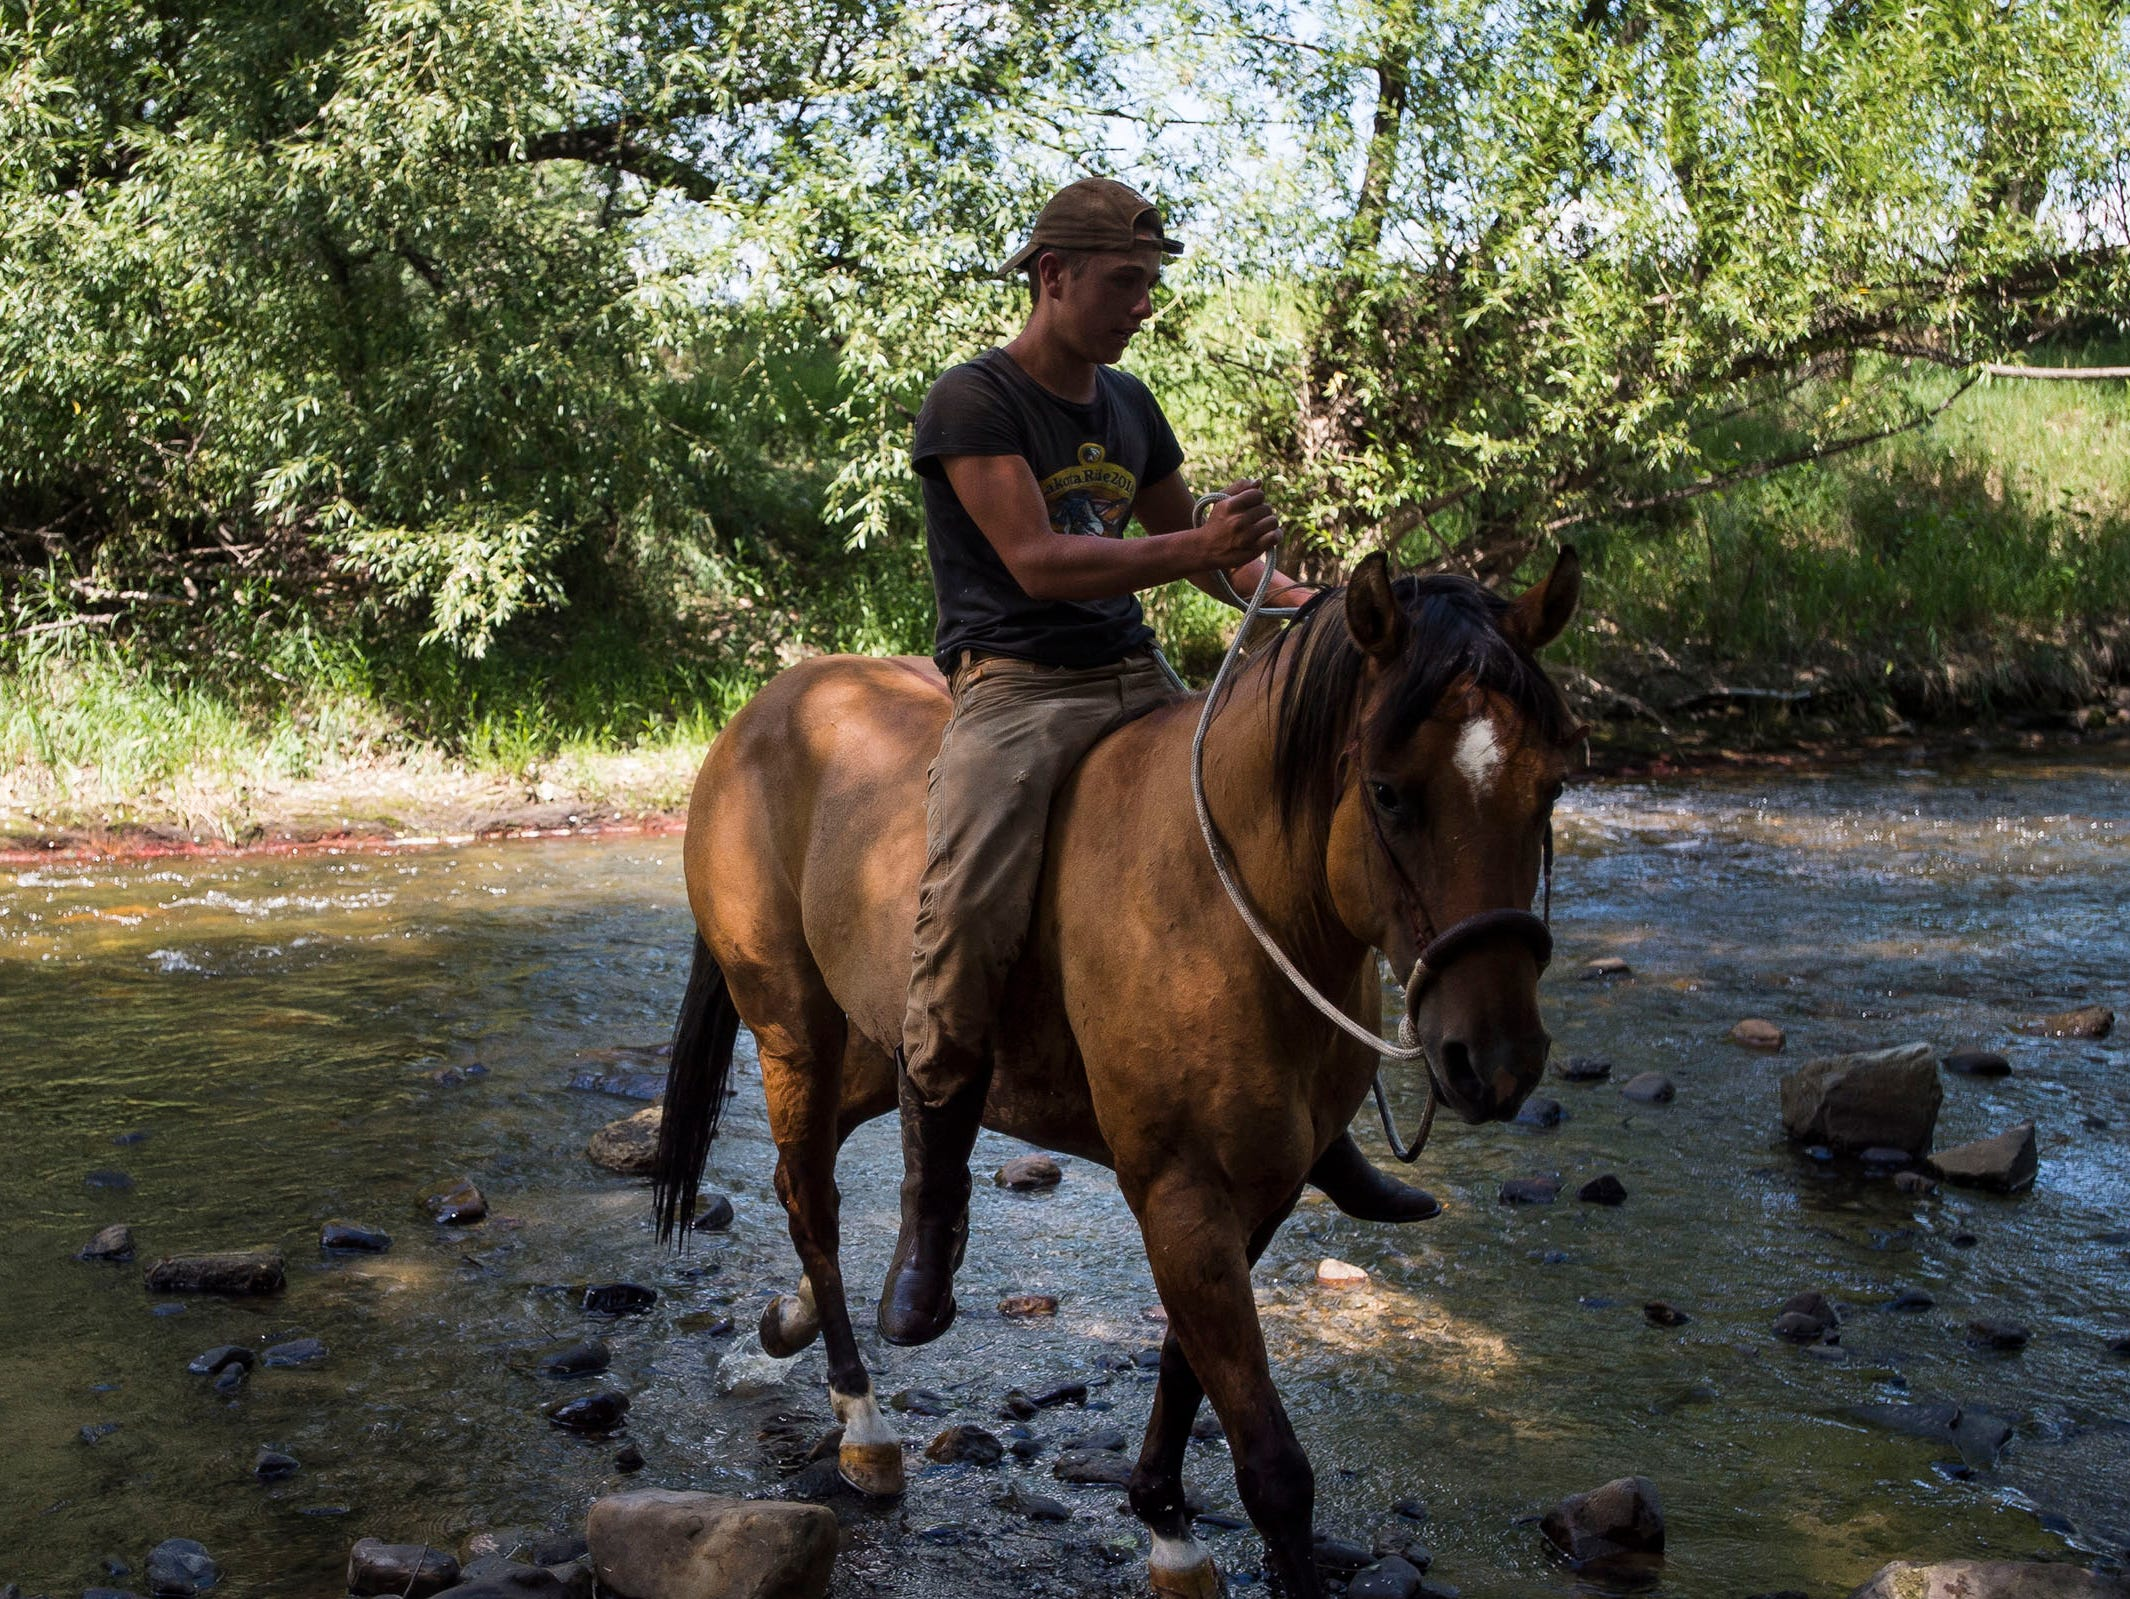 Adam Ventimiglia takes his horse through the river during the LakotaRide 2018 on their way to Namaqua Park on Thursday, July 19, 2018, in Loveland, Colo.